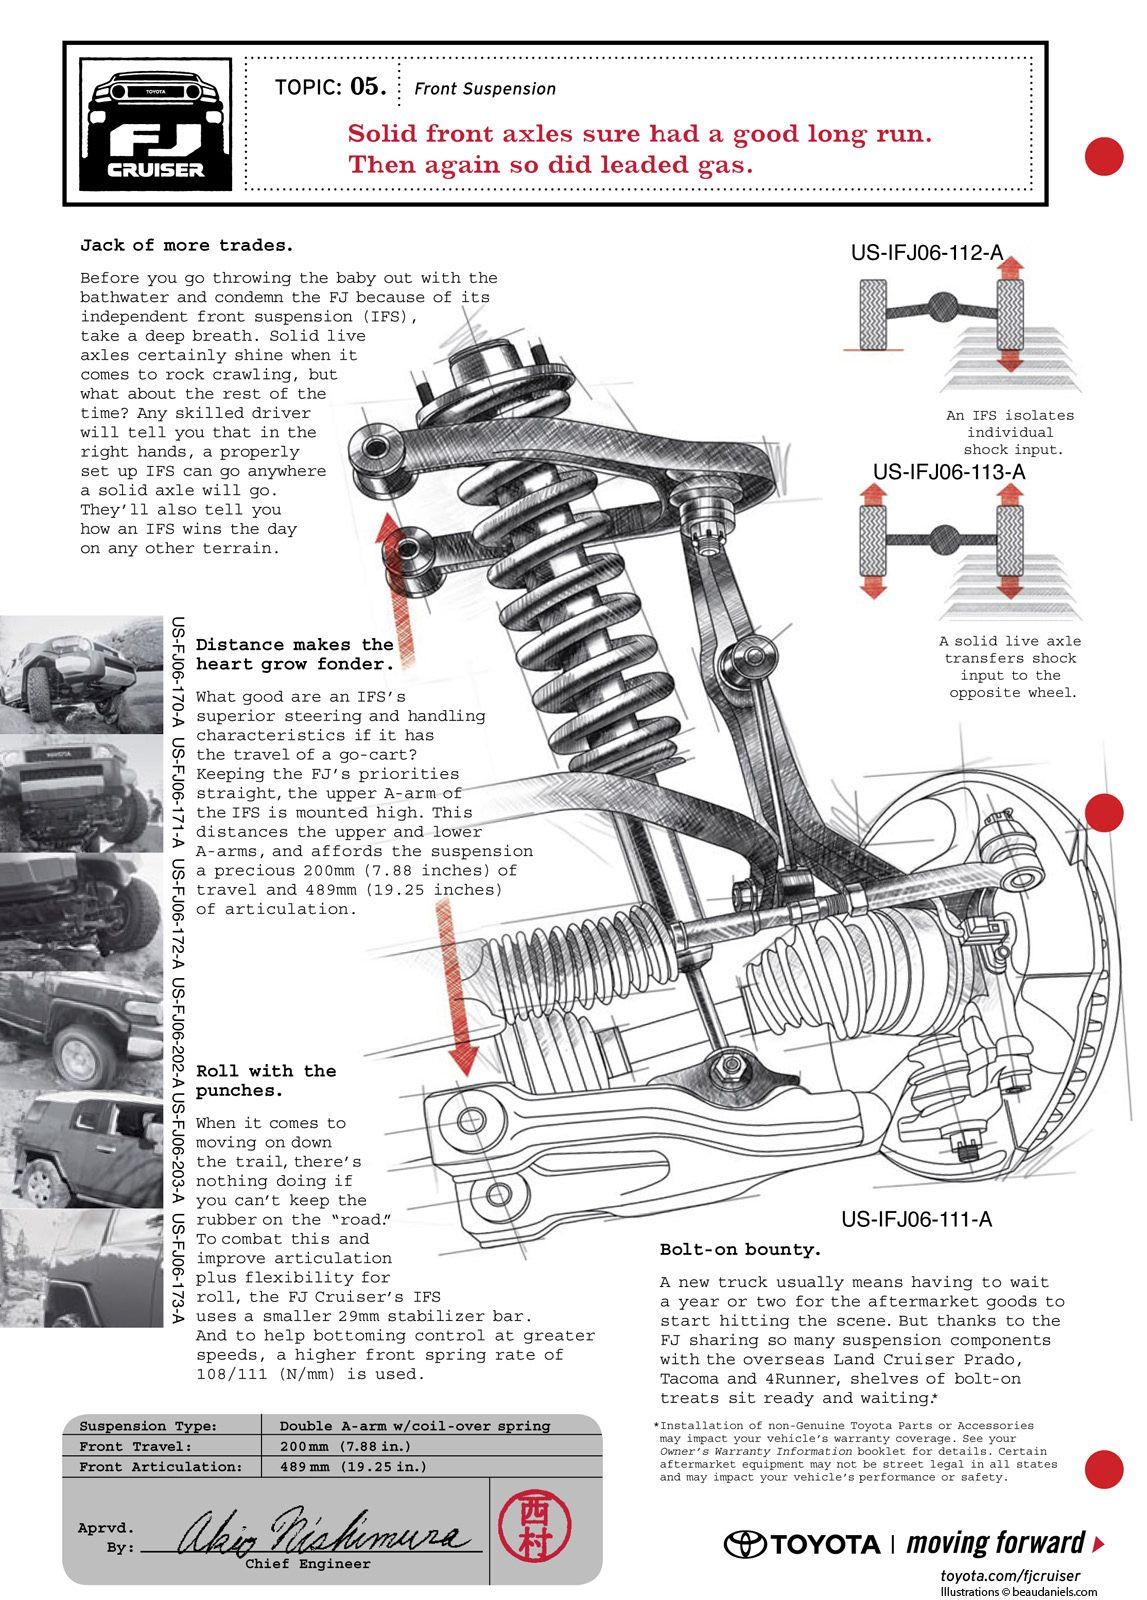 Fj Cruiser Ads Technical Illustration And Diagrams